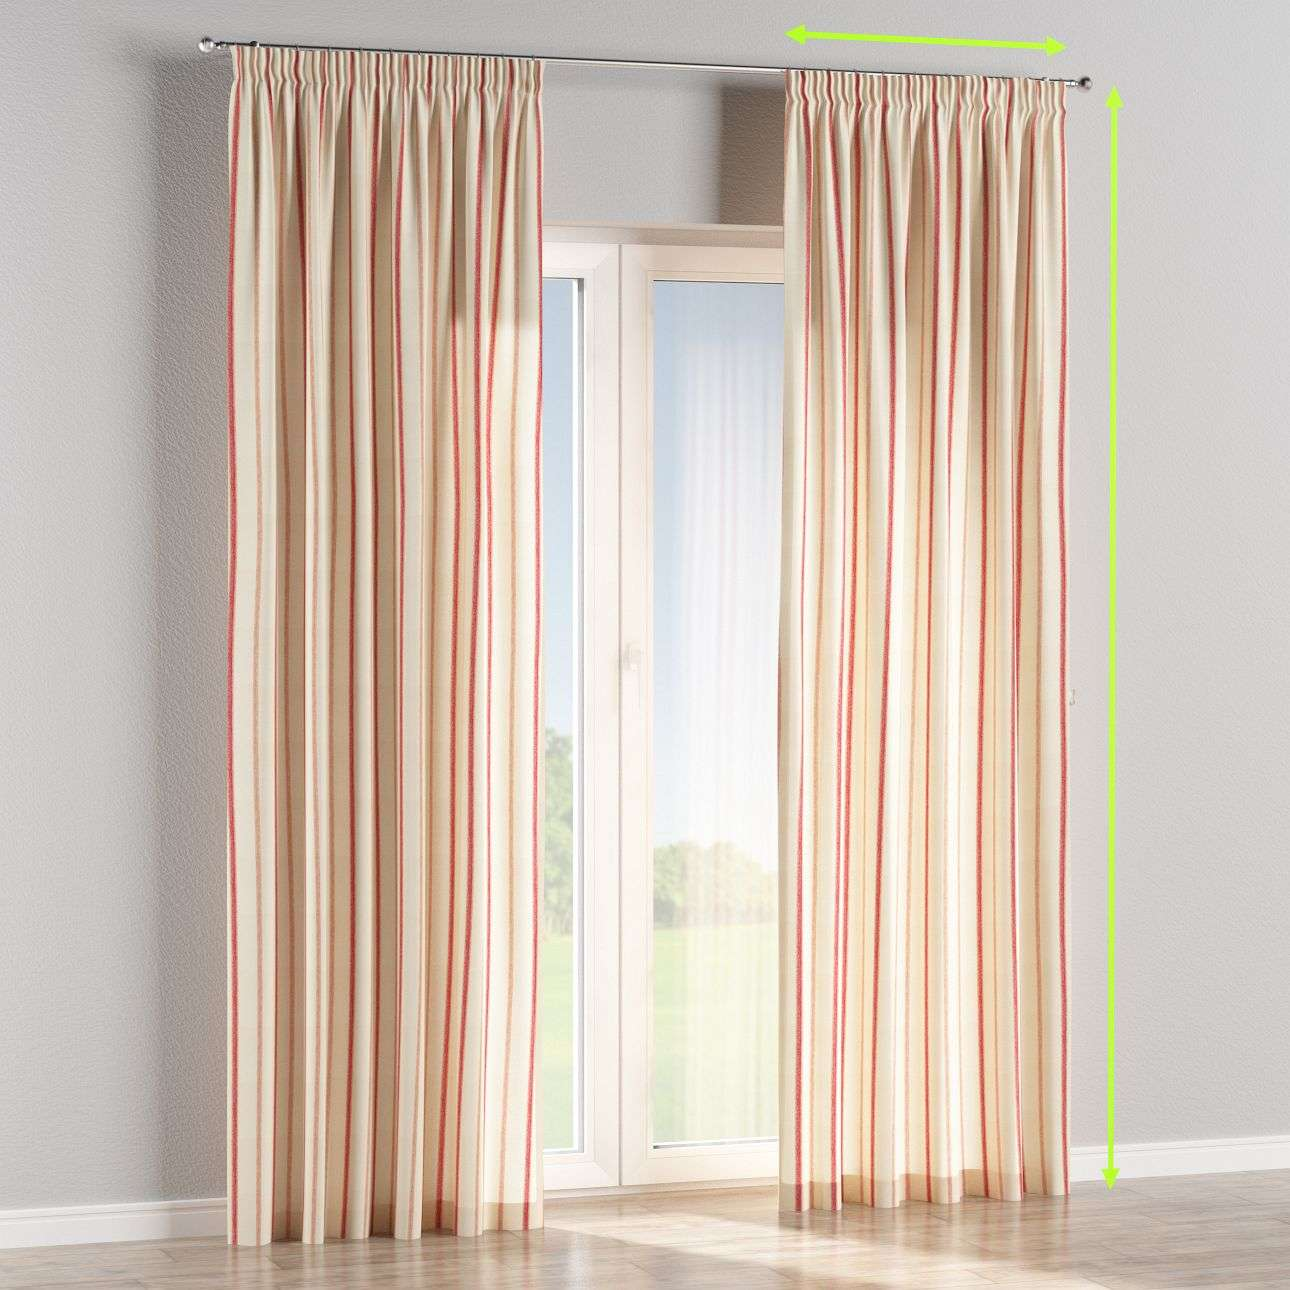 Pencil pleat lined curtains in collection Avinon, fabric: 129-15